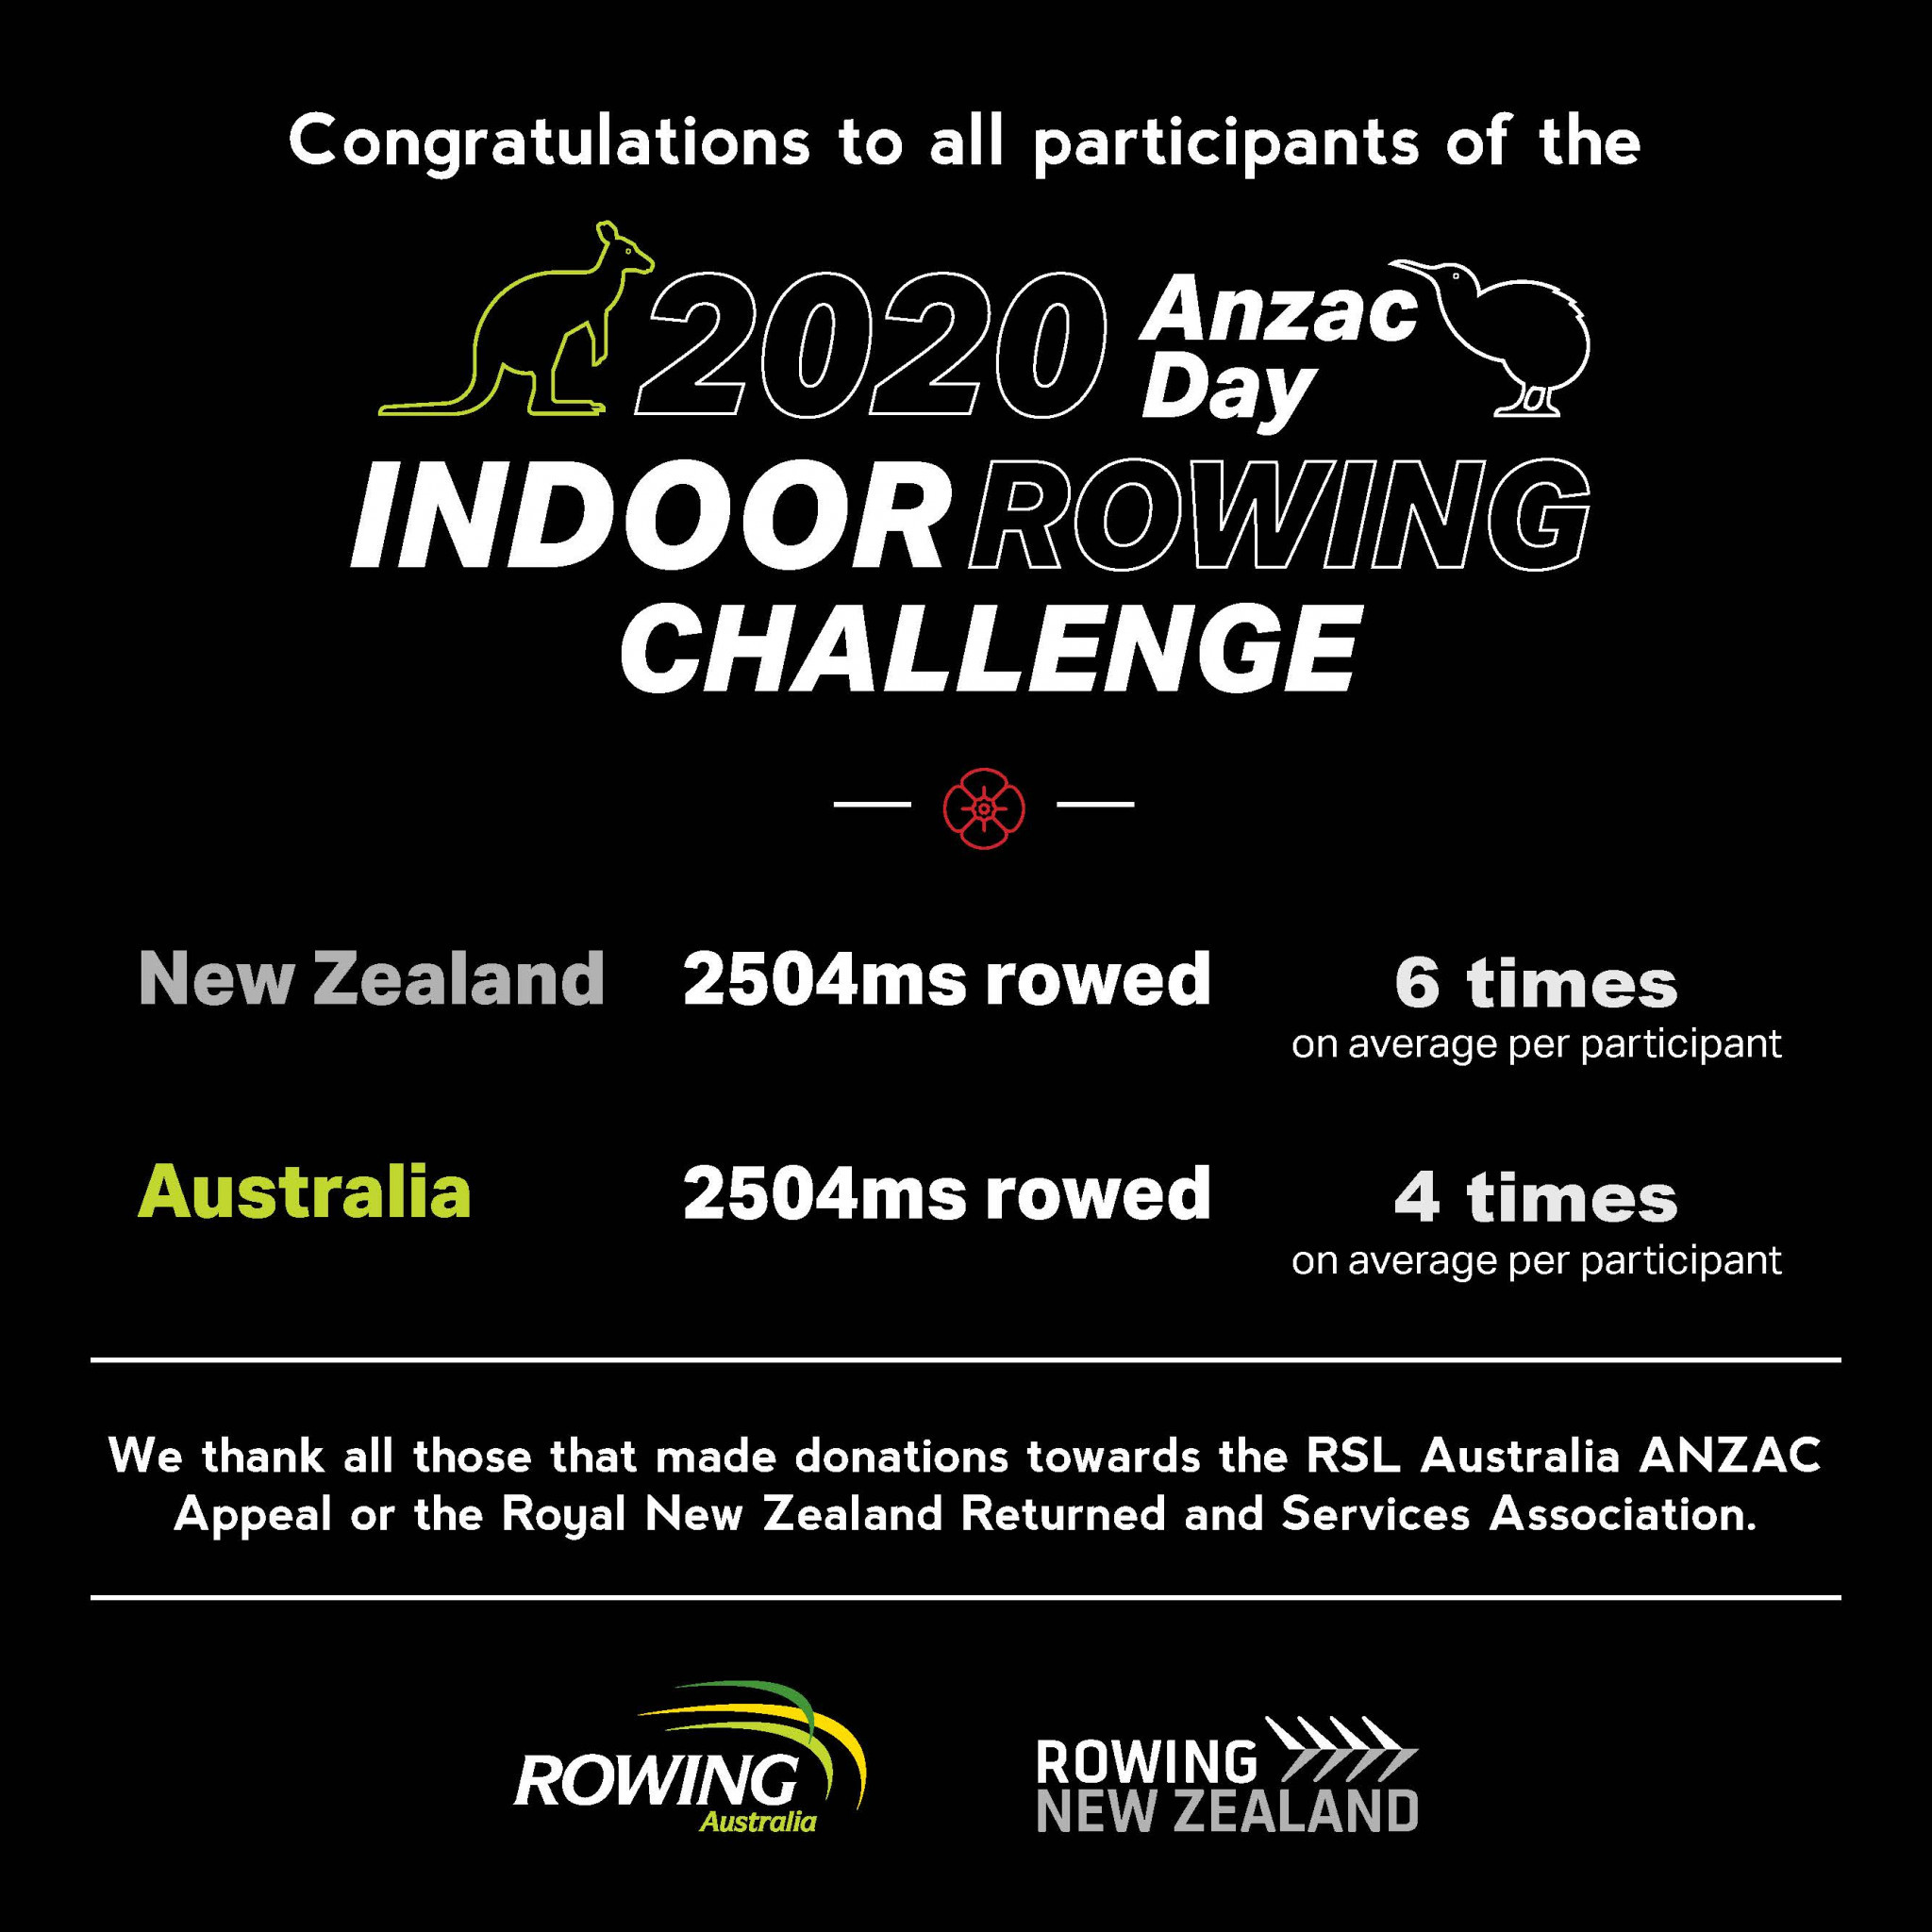 ANZAC Indoor Rowing Challenge for 2020 was won by New Zealand ©Twitter/@RowingAust